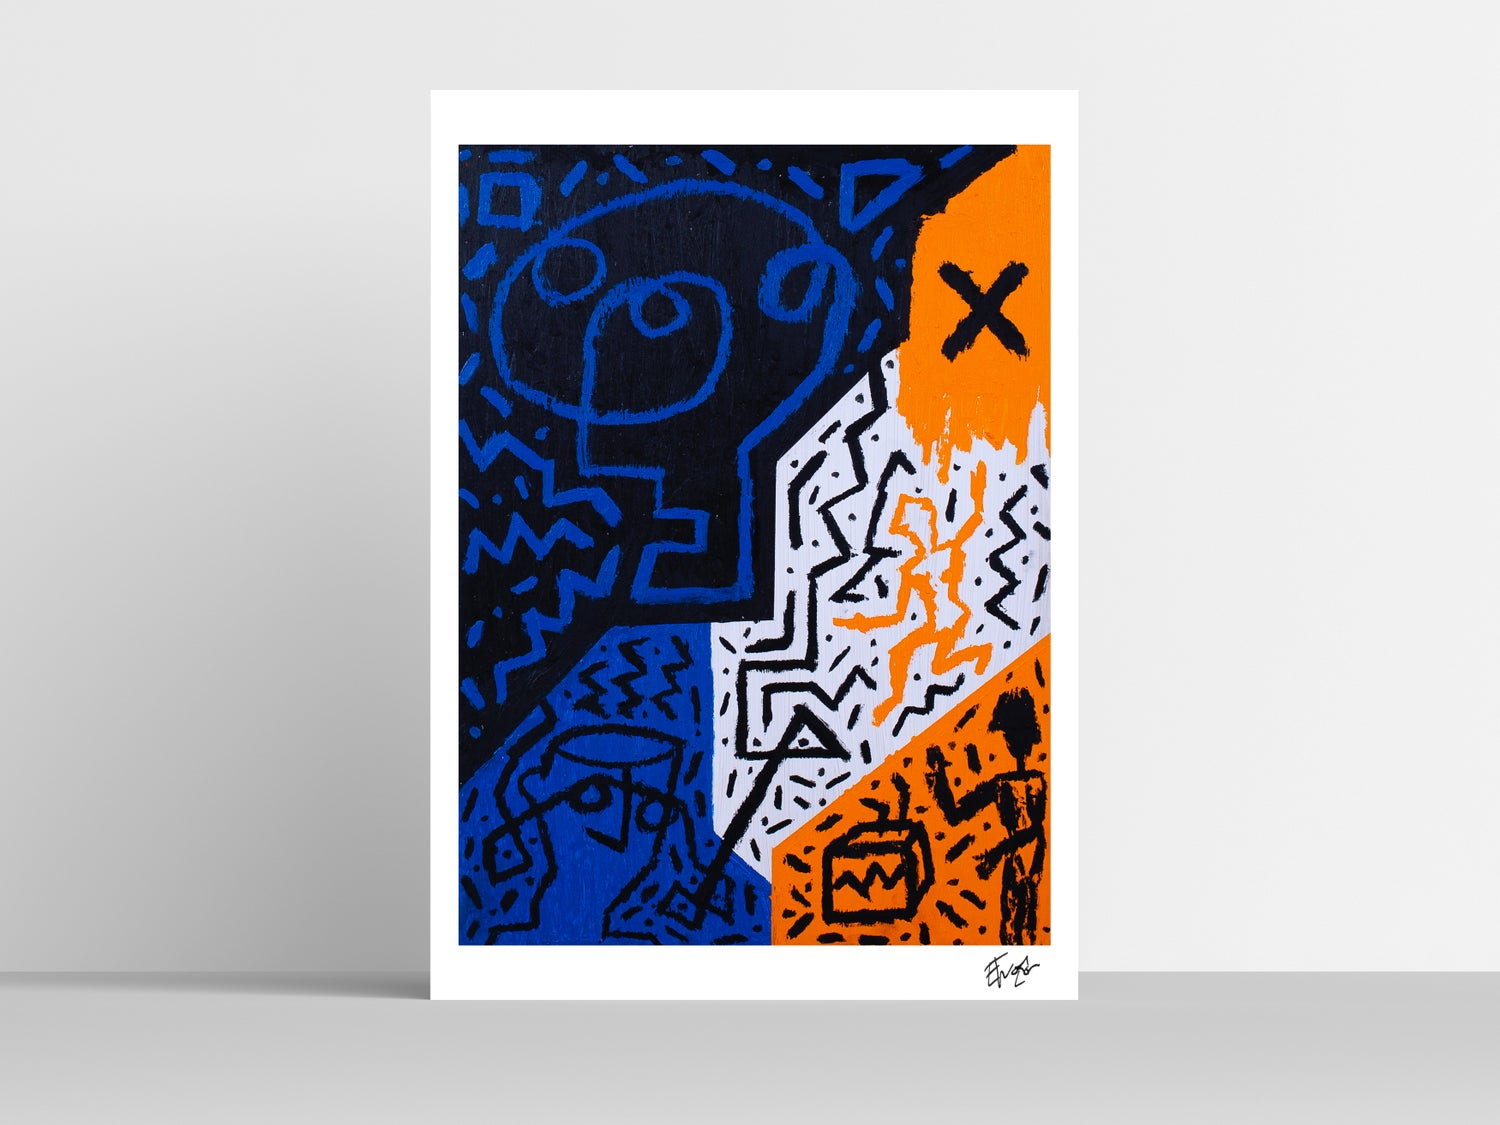 'Thirsty and Miserable' A3 Print